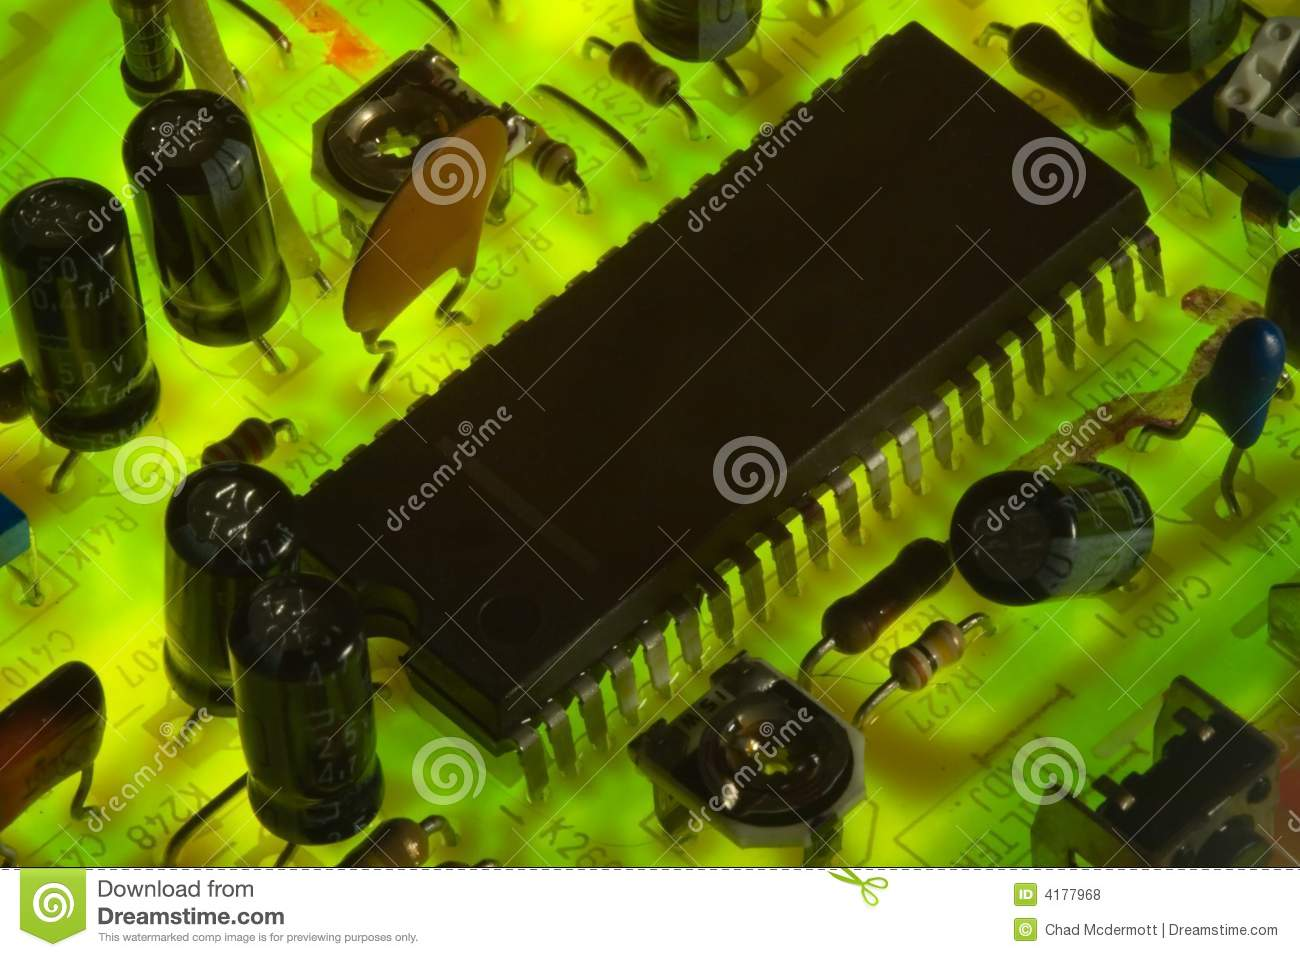 Electronic Circuit Board Stock Photo Image Of 4177968 Pics Photos Showing Wires And Microchips